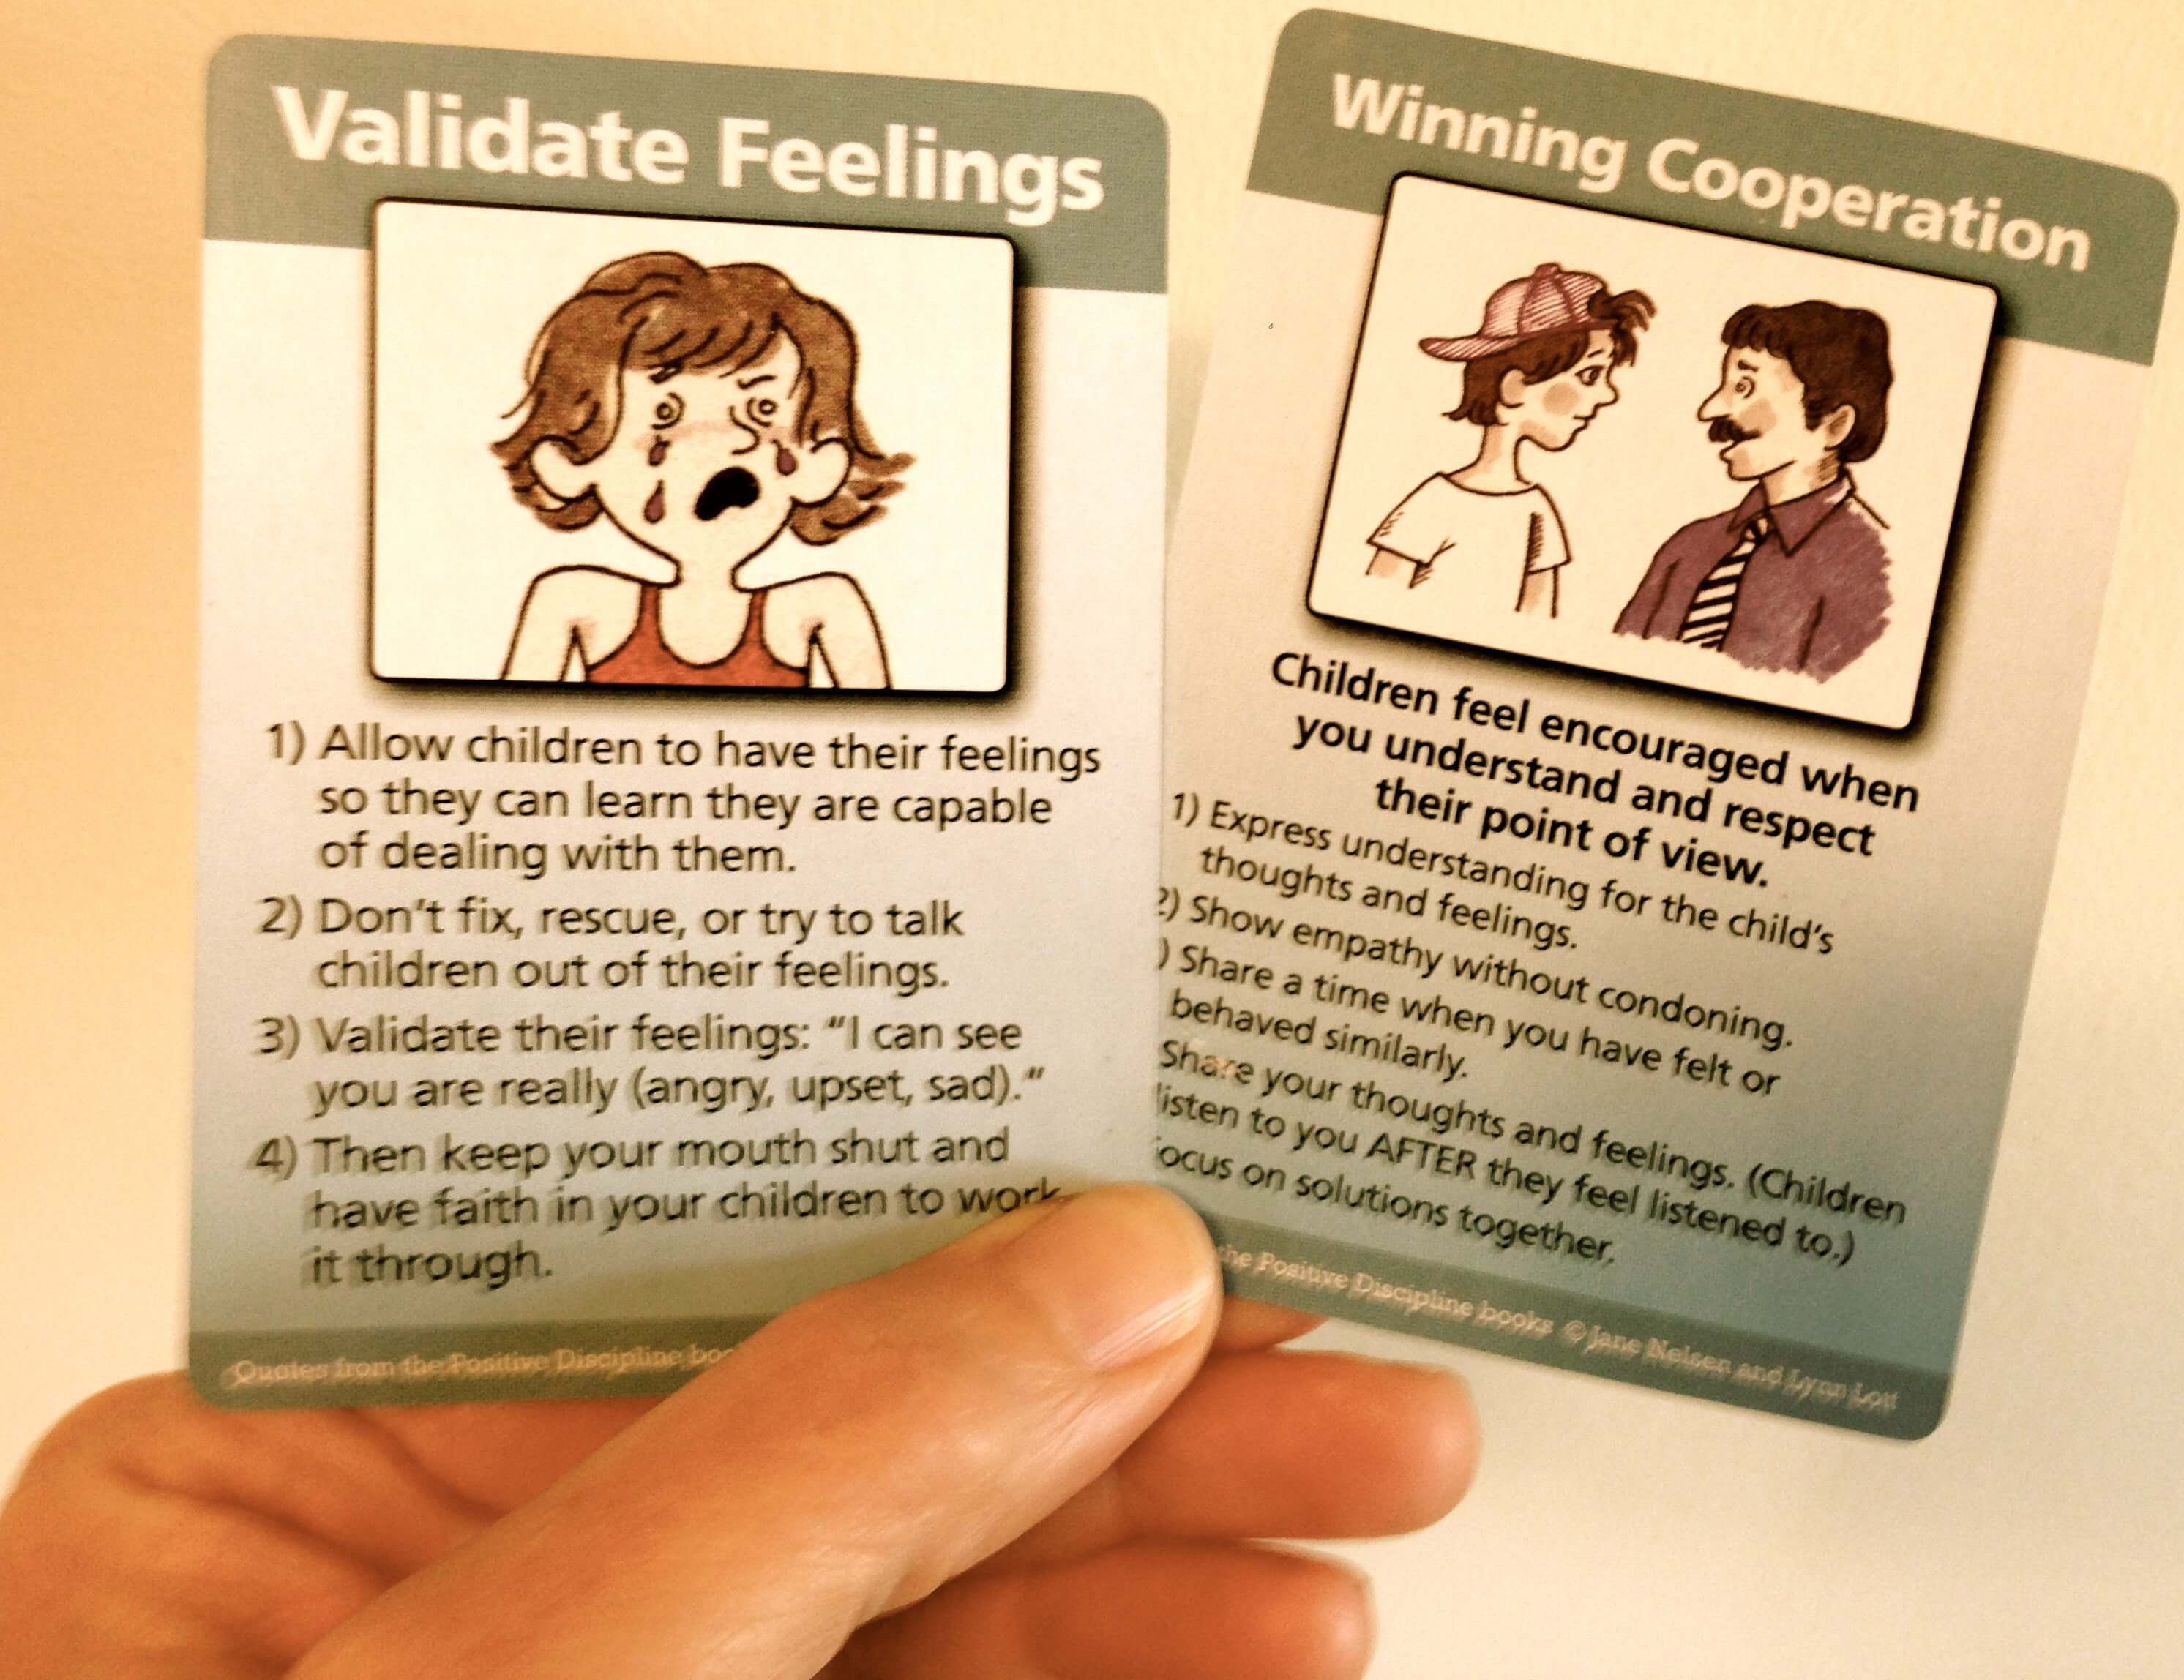 Winning Genuine Cooperation by Showing Empathy and ...